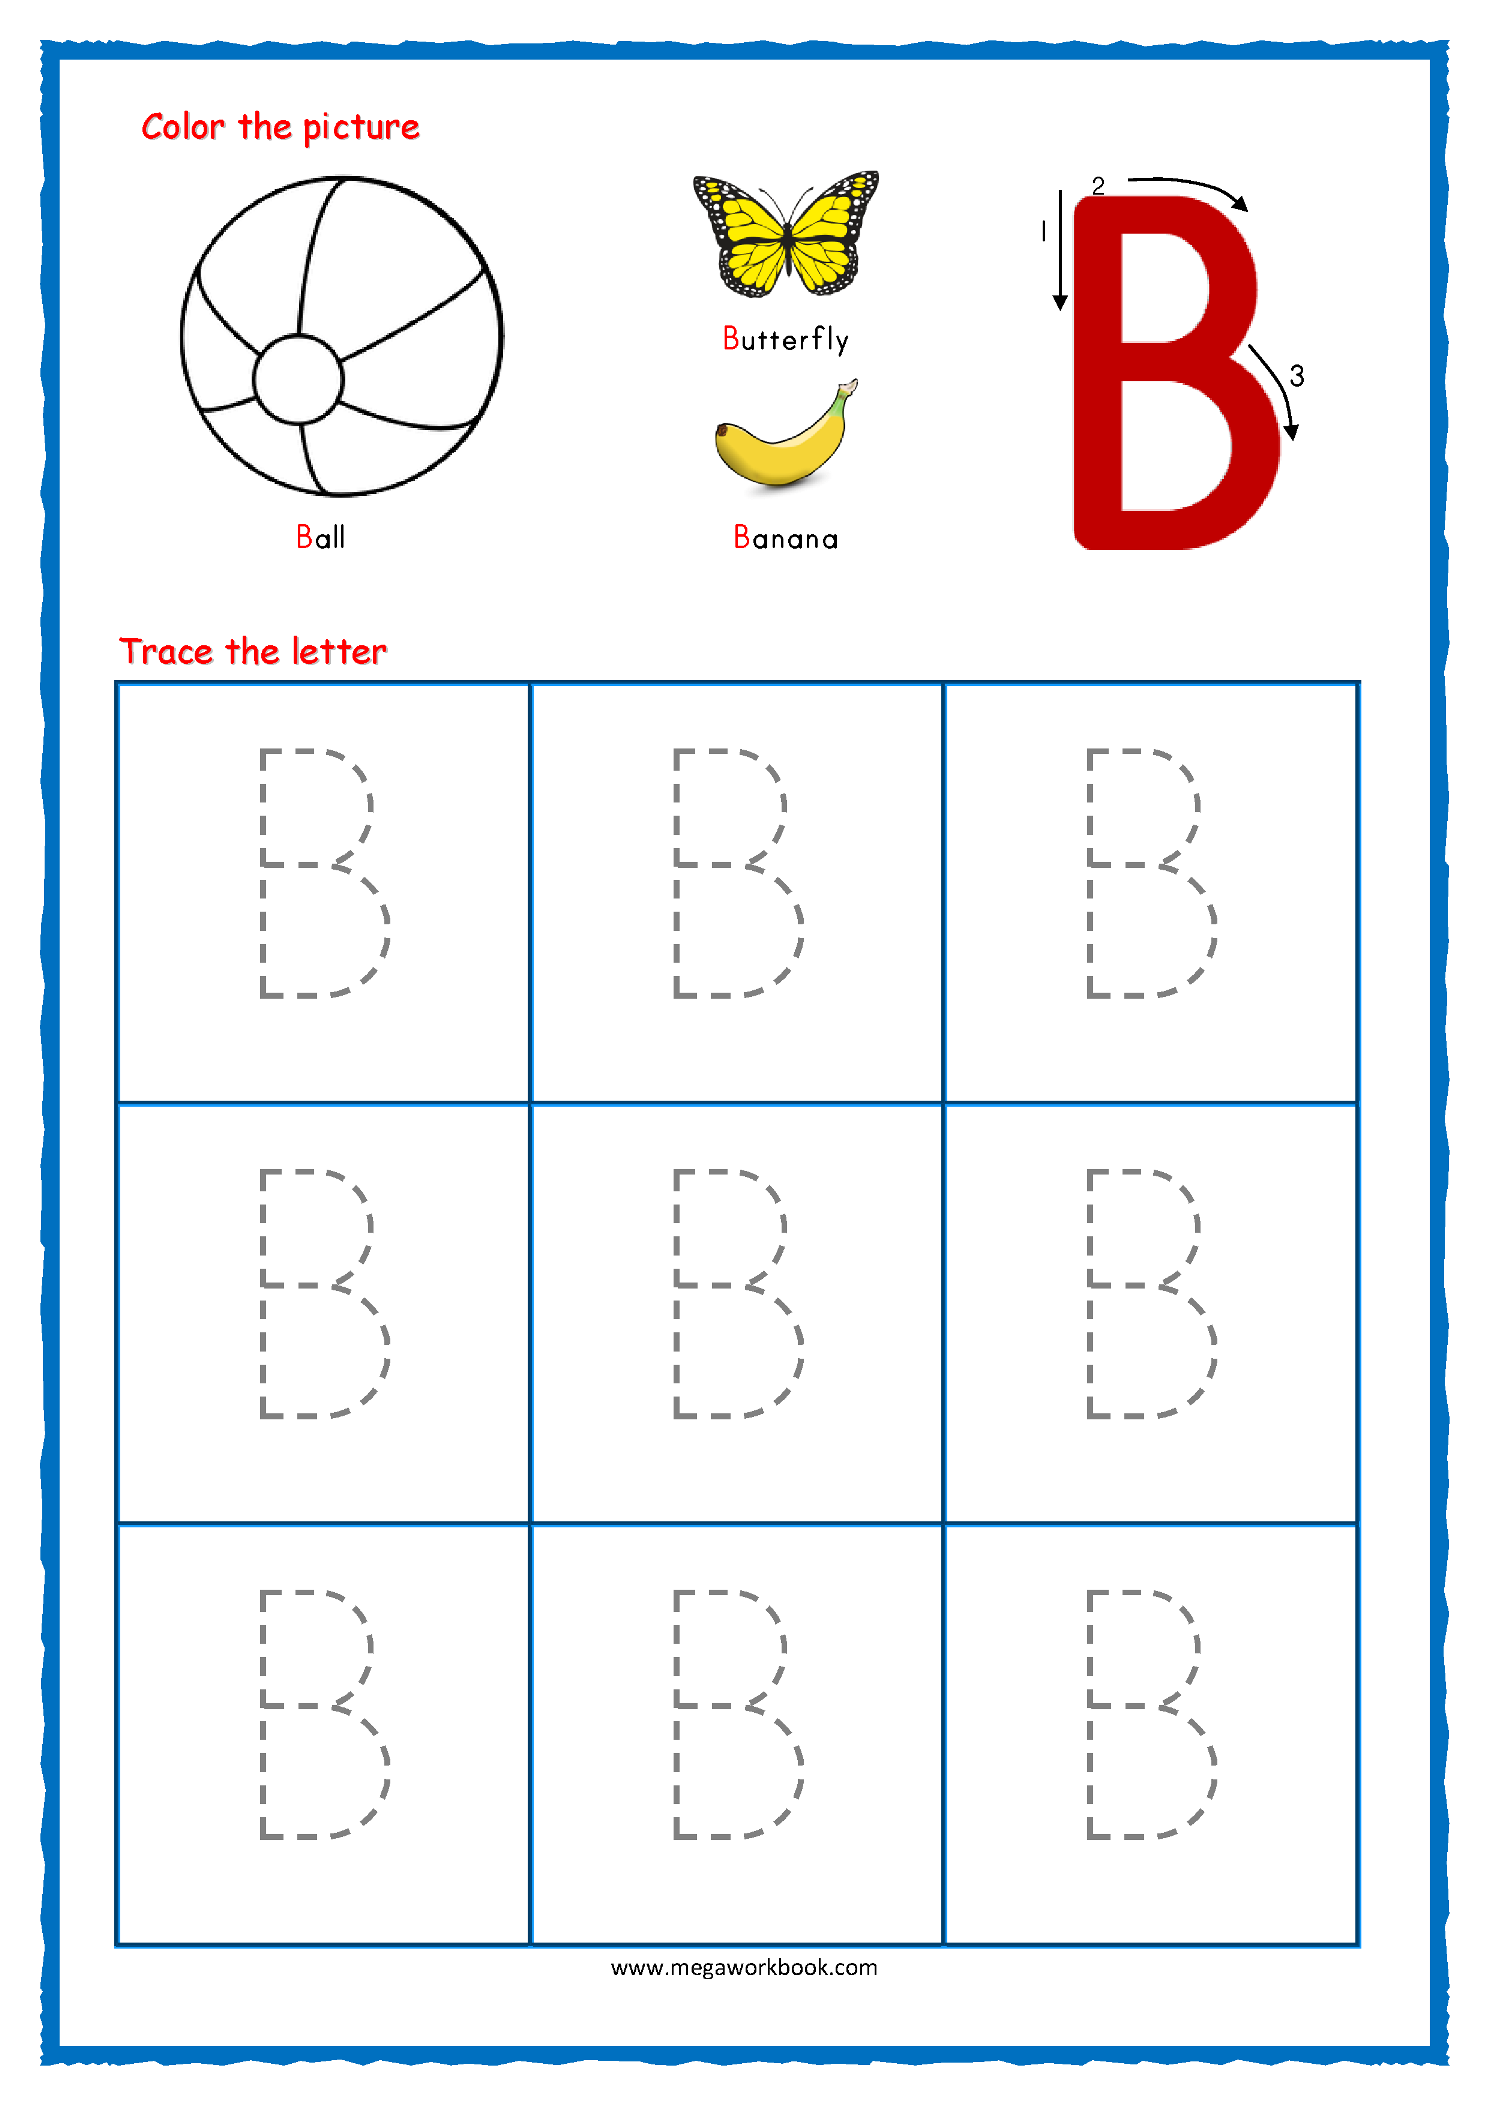 Number Tracing Worksheets Capital Alphabets Practice For throughout Alphabet Tracing Worksheets A-Z Pdf